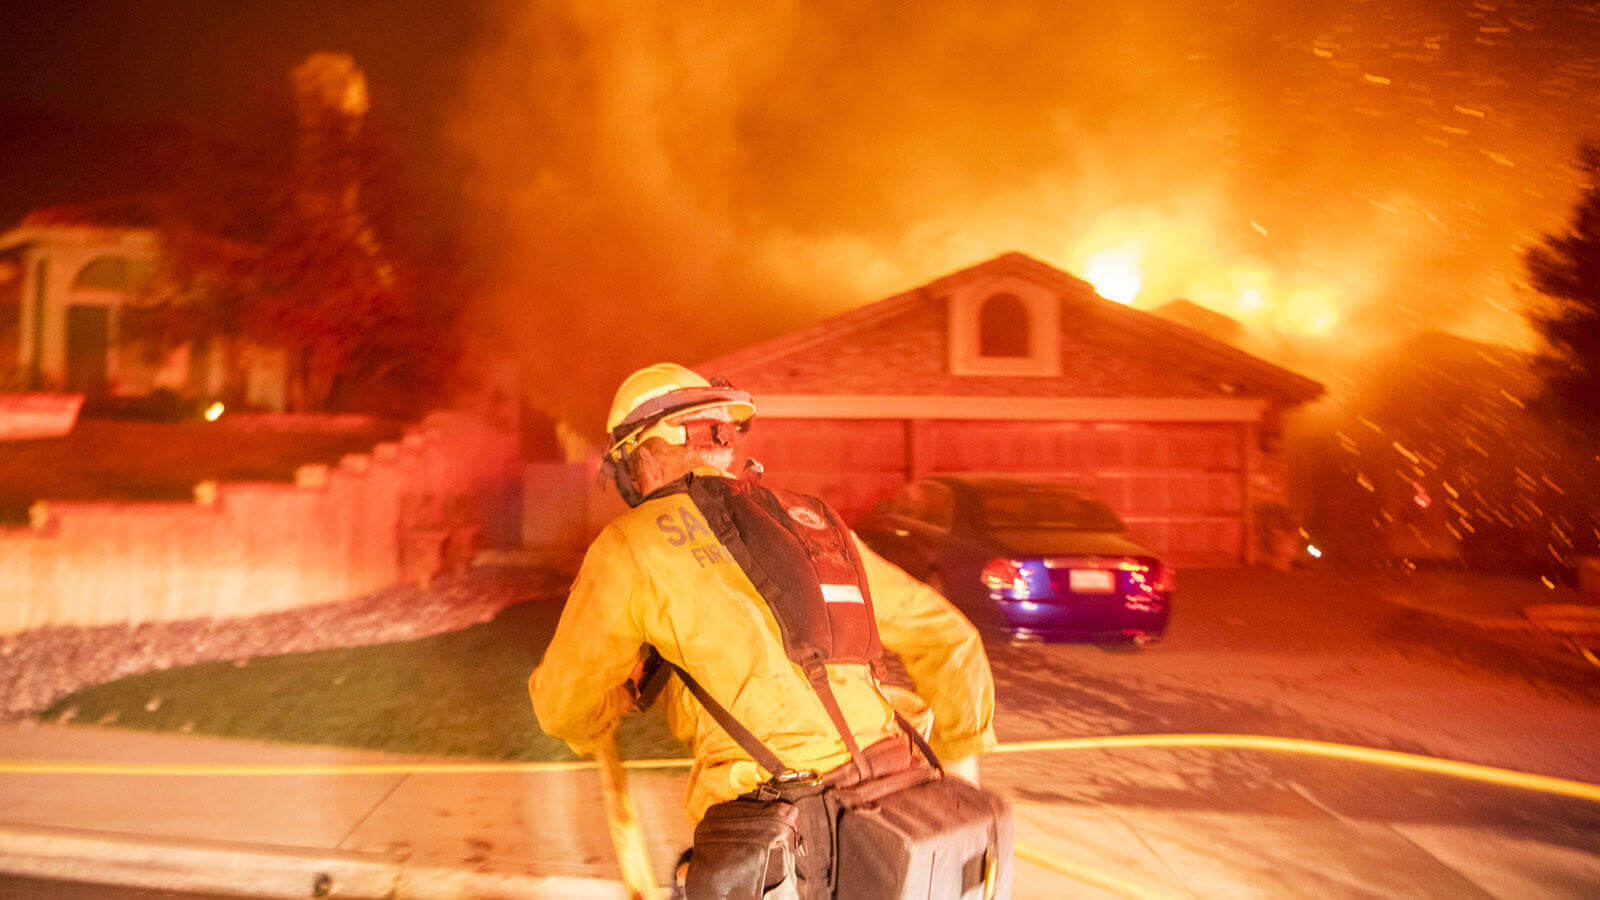 Woolsey Fire Burns Homes In Ventura County And Grows To 8,000